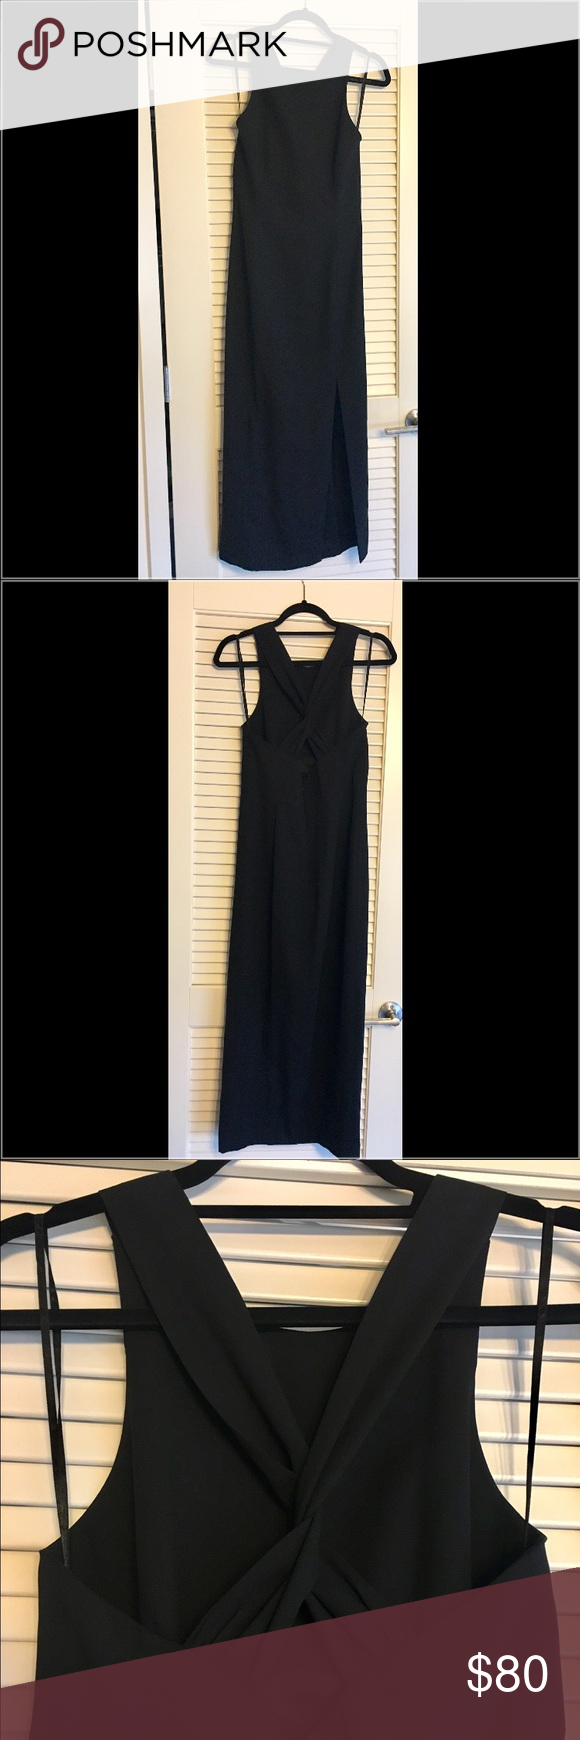 """Elegant black evening gown Only worn once! Beautiful Ann Taylor evening gown. Sleeveless. Measures 35"""" from waist down, Hits just above ankle. Slit on left side measures 19"""". Gorgeous back accent with cross-cross material. 52% polyester 48% acetate. Ann Taylor Dresses"""